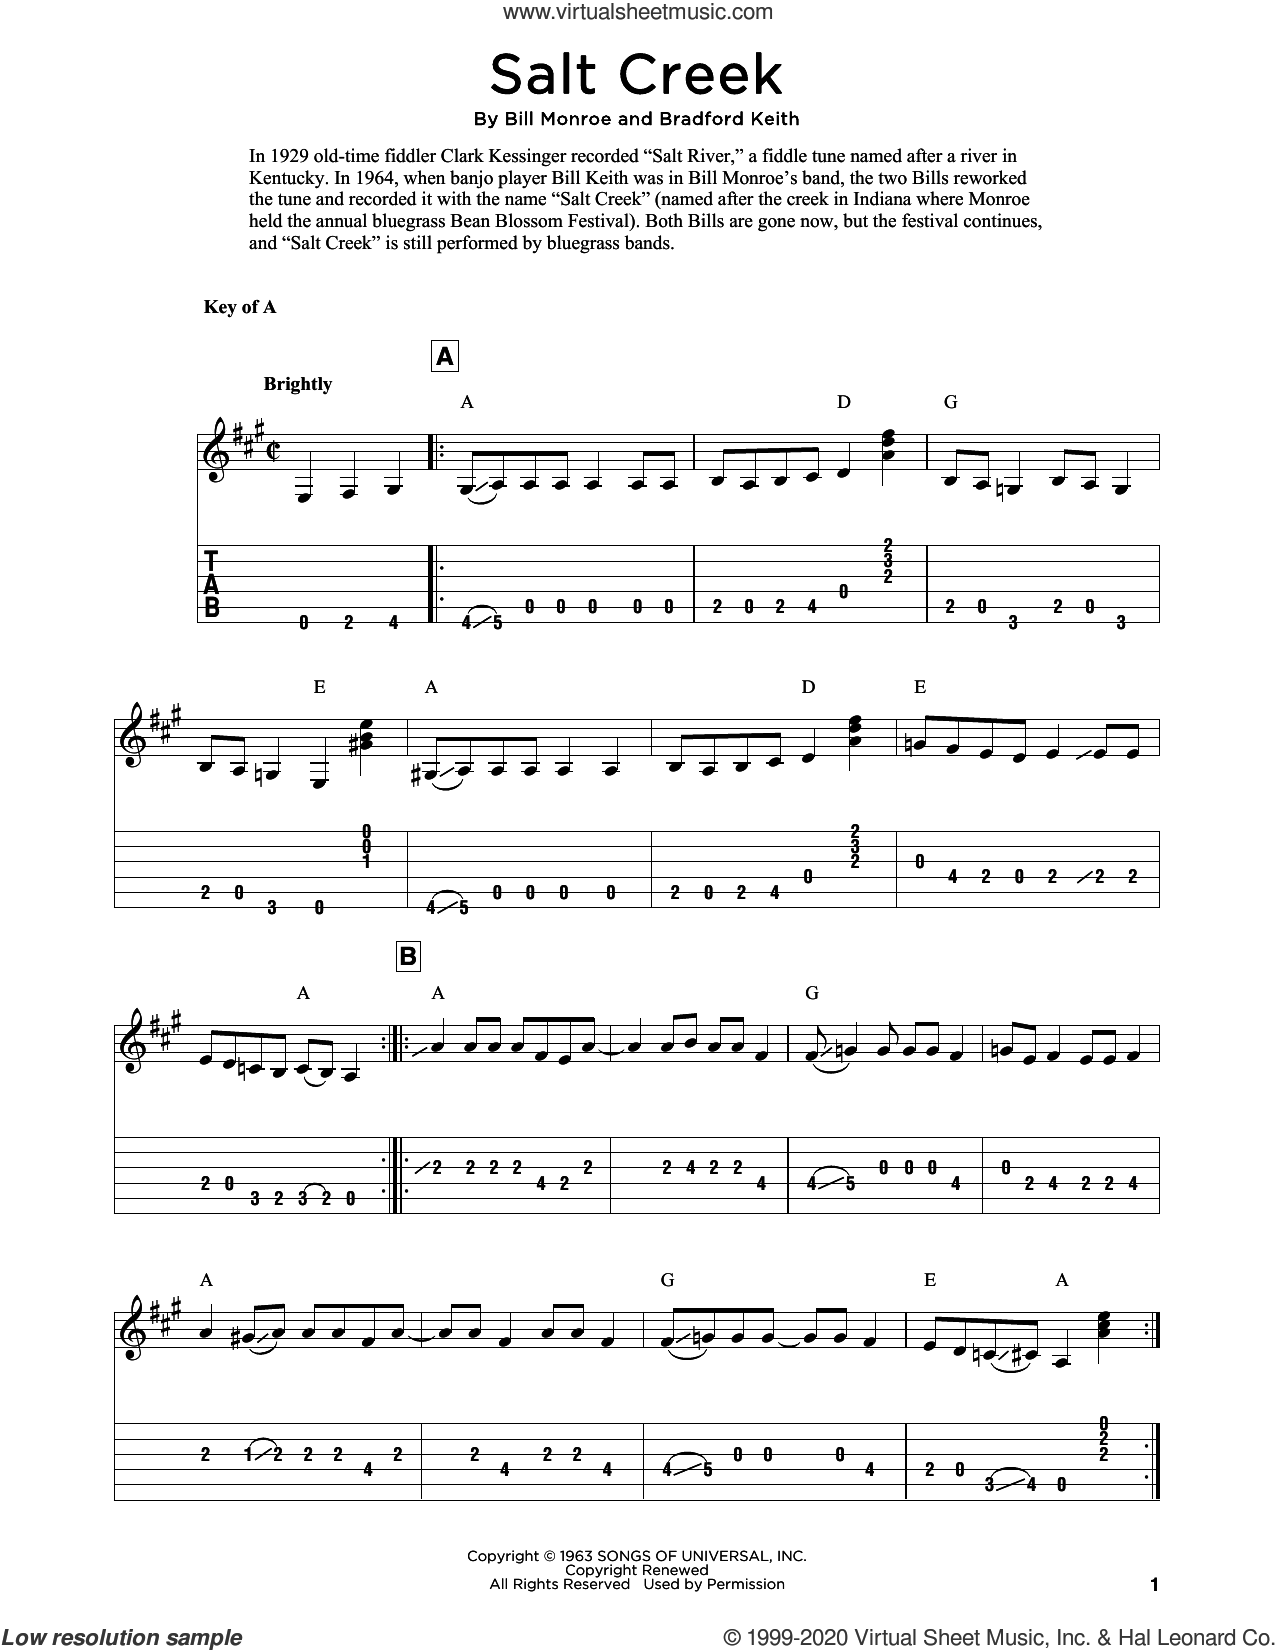 Salt Creek (arr. Fred Sokolow) sheet music for guitar solo by Bill Monroe, Fred Sokolow and Bradford Keith, intermediate skill level